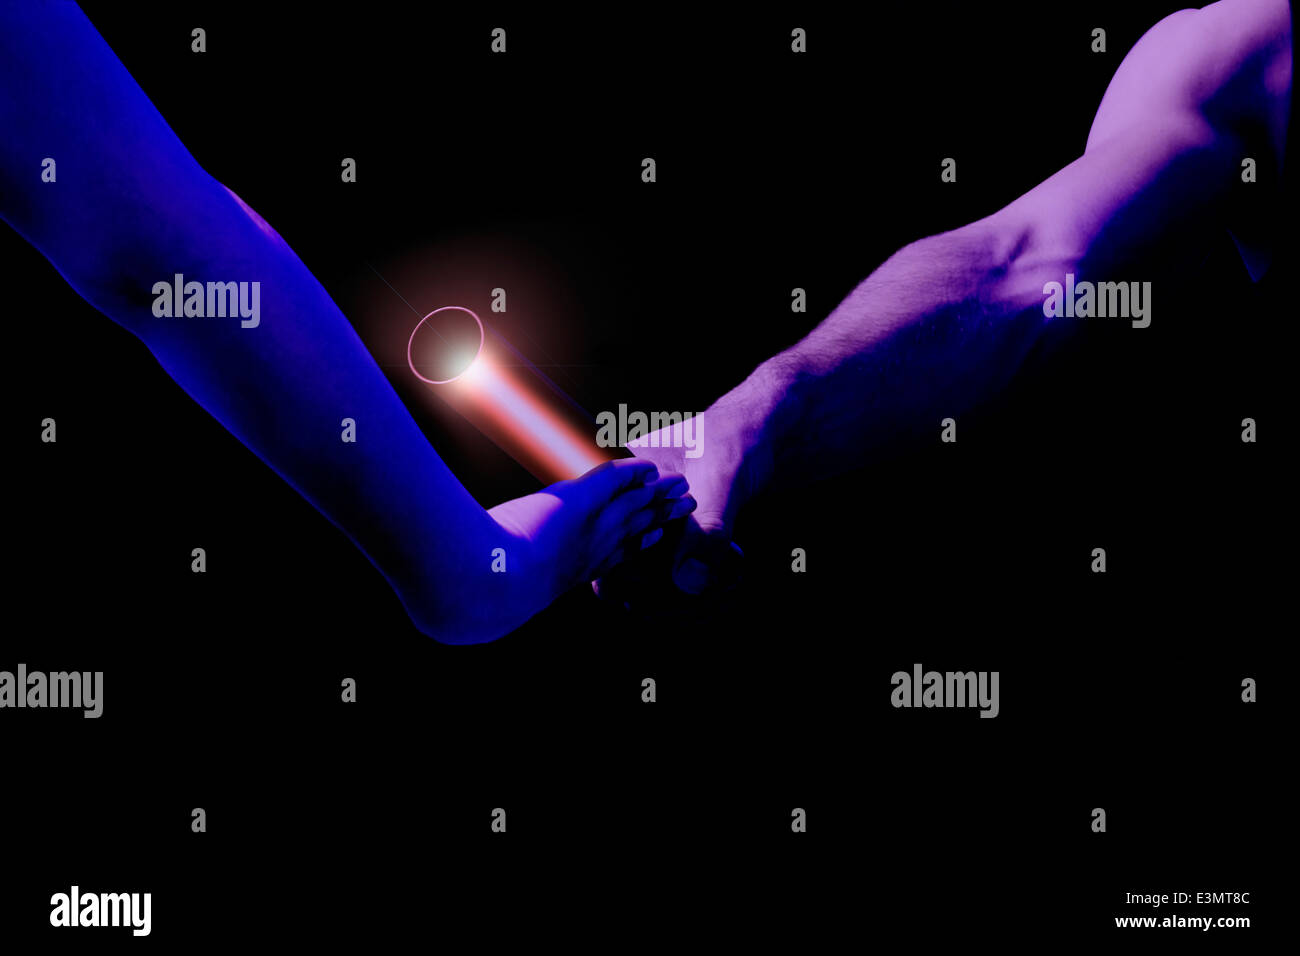 Male relay runner hands over the red baton to female runner. Blue filtered version - Stock Image